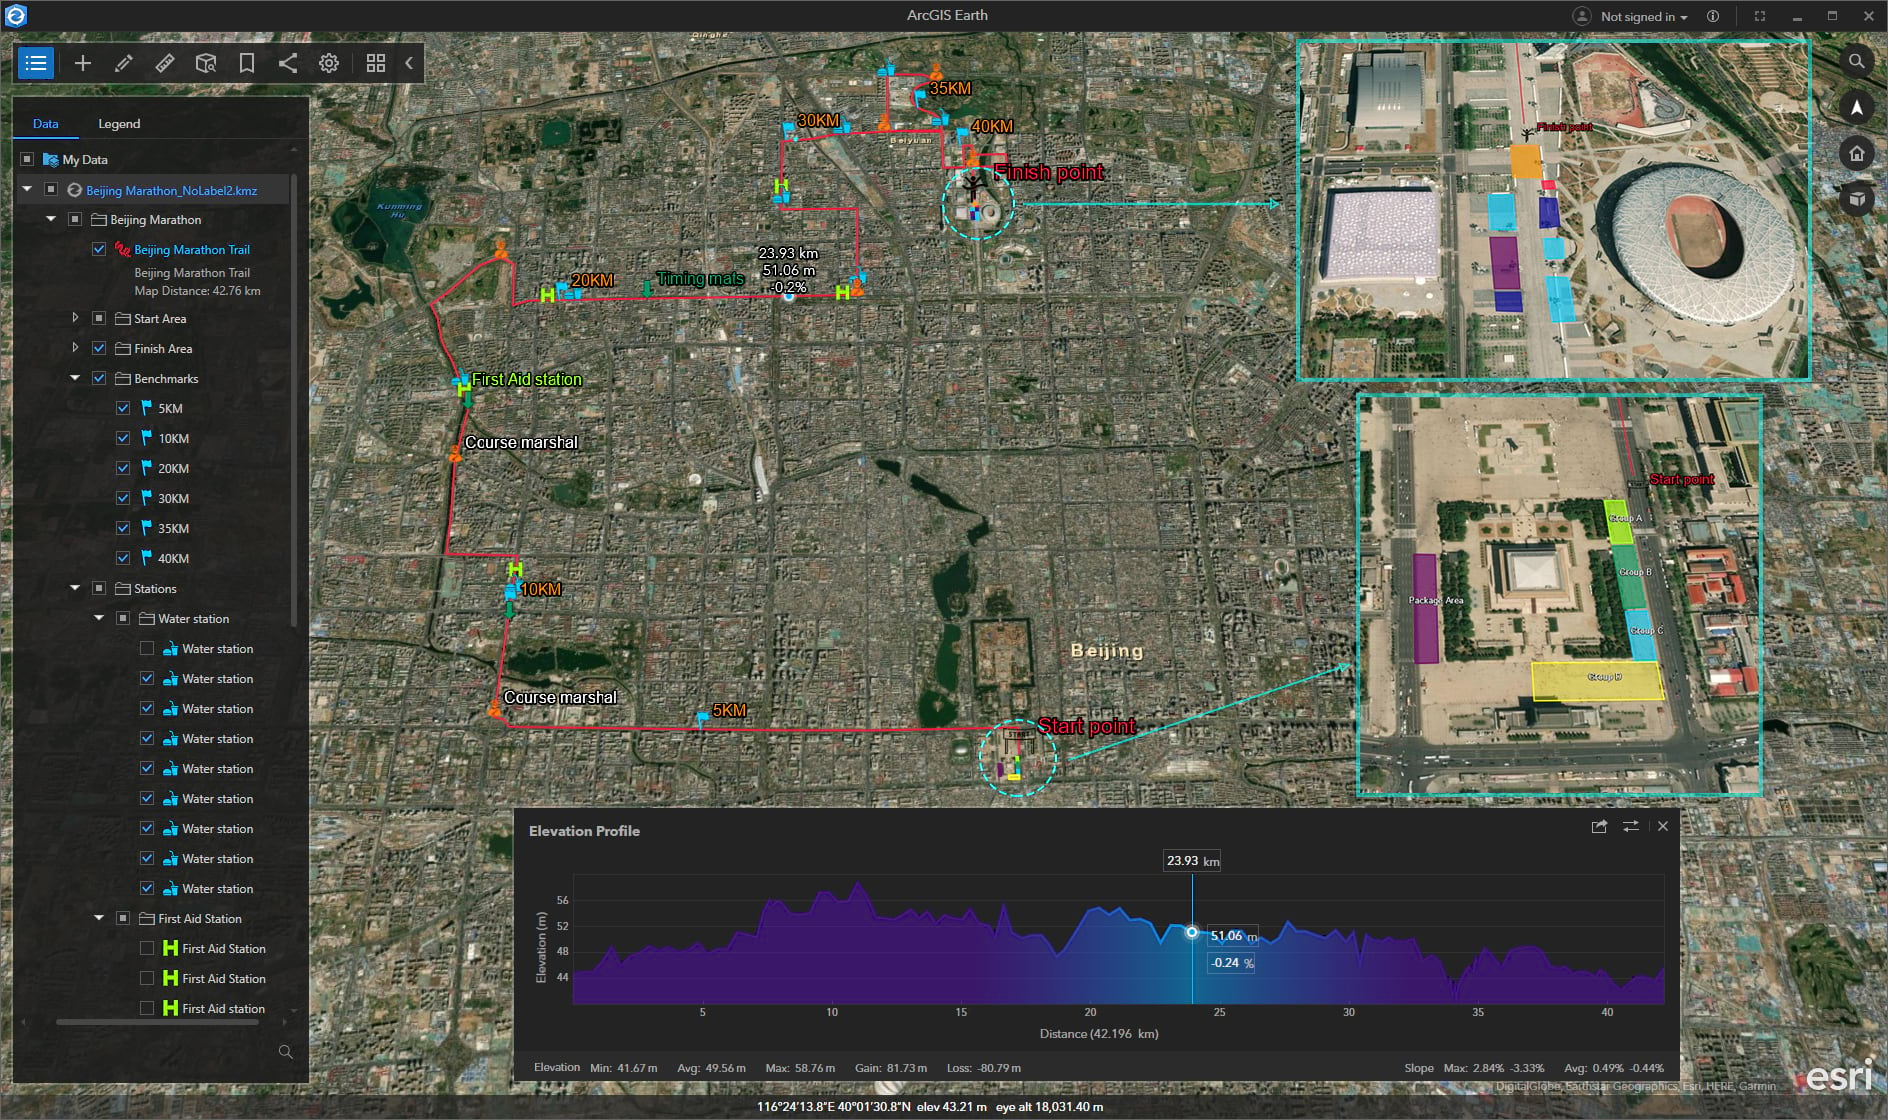 Display the plan of marathon with ArcGIS Earth